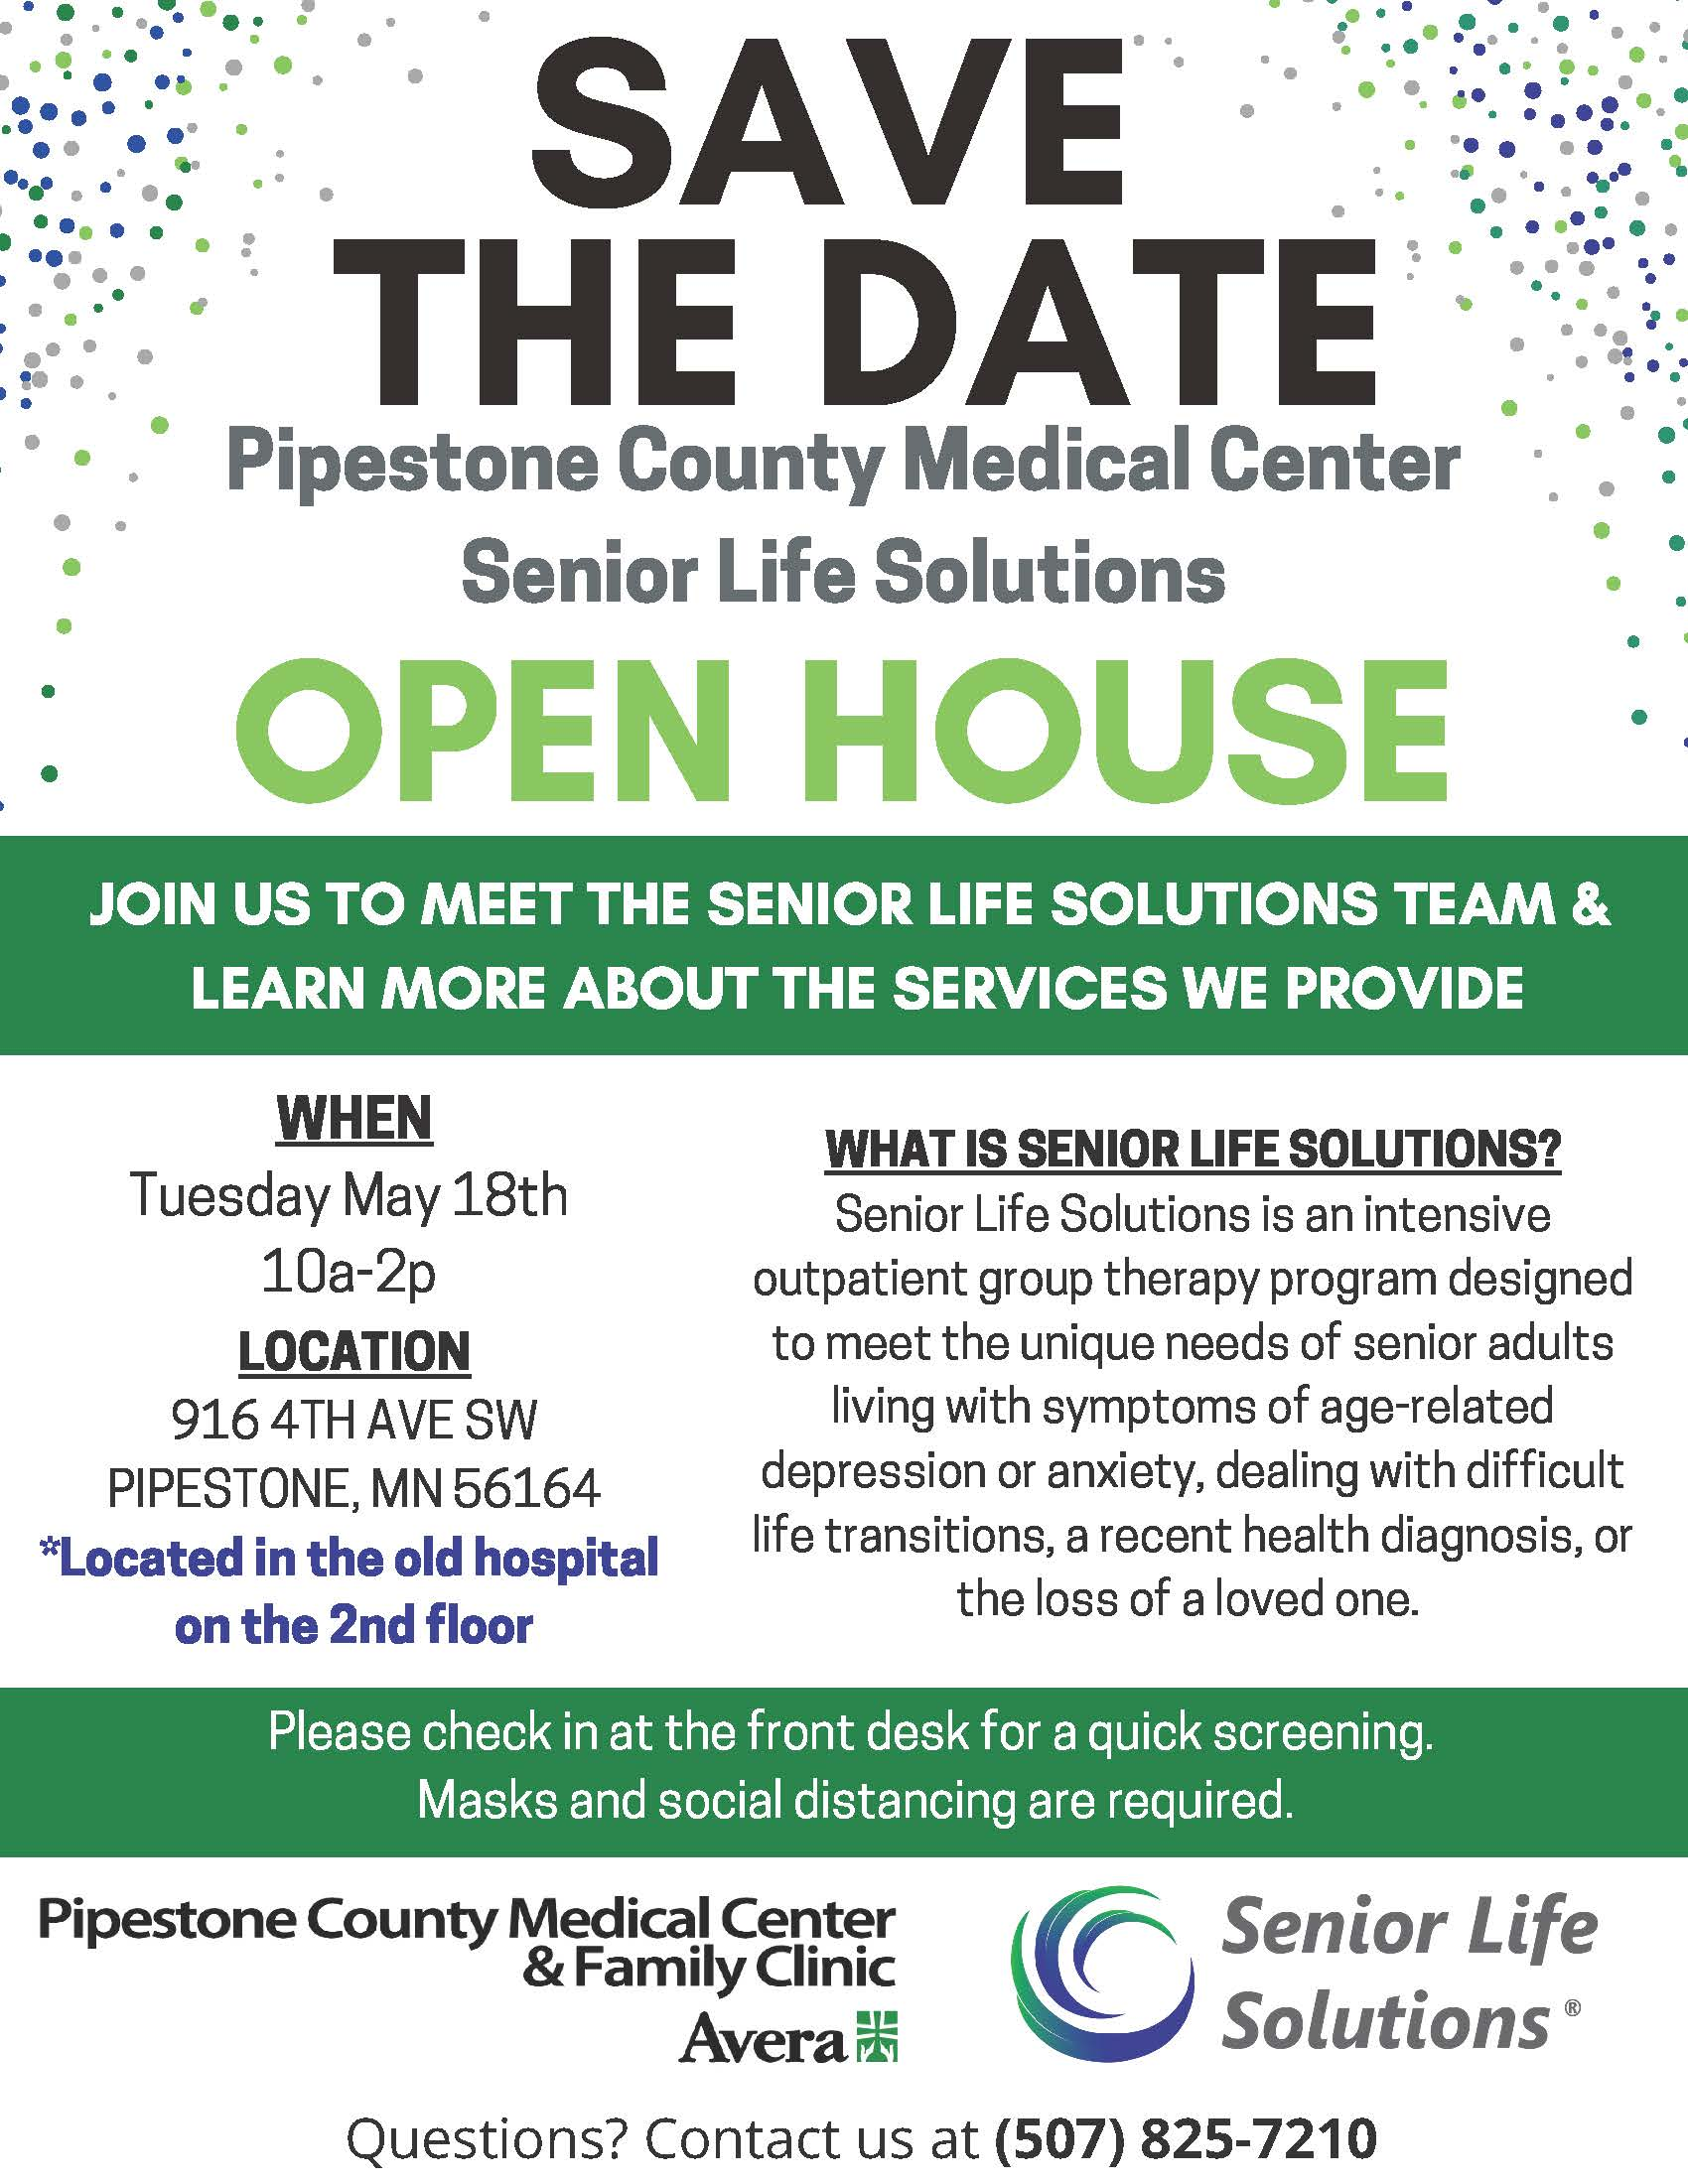 Save The Date Open House Flyer